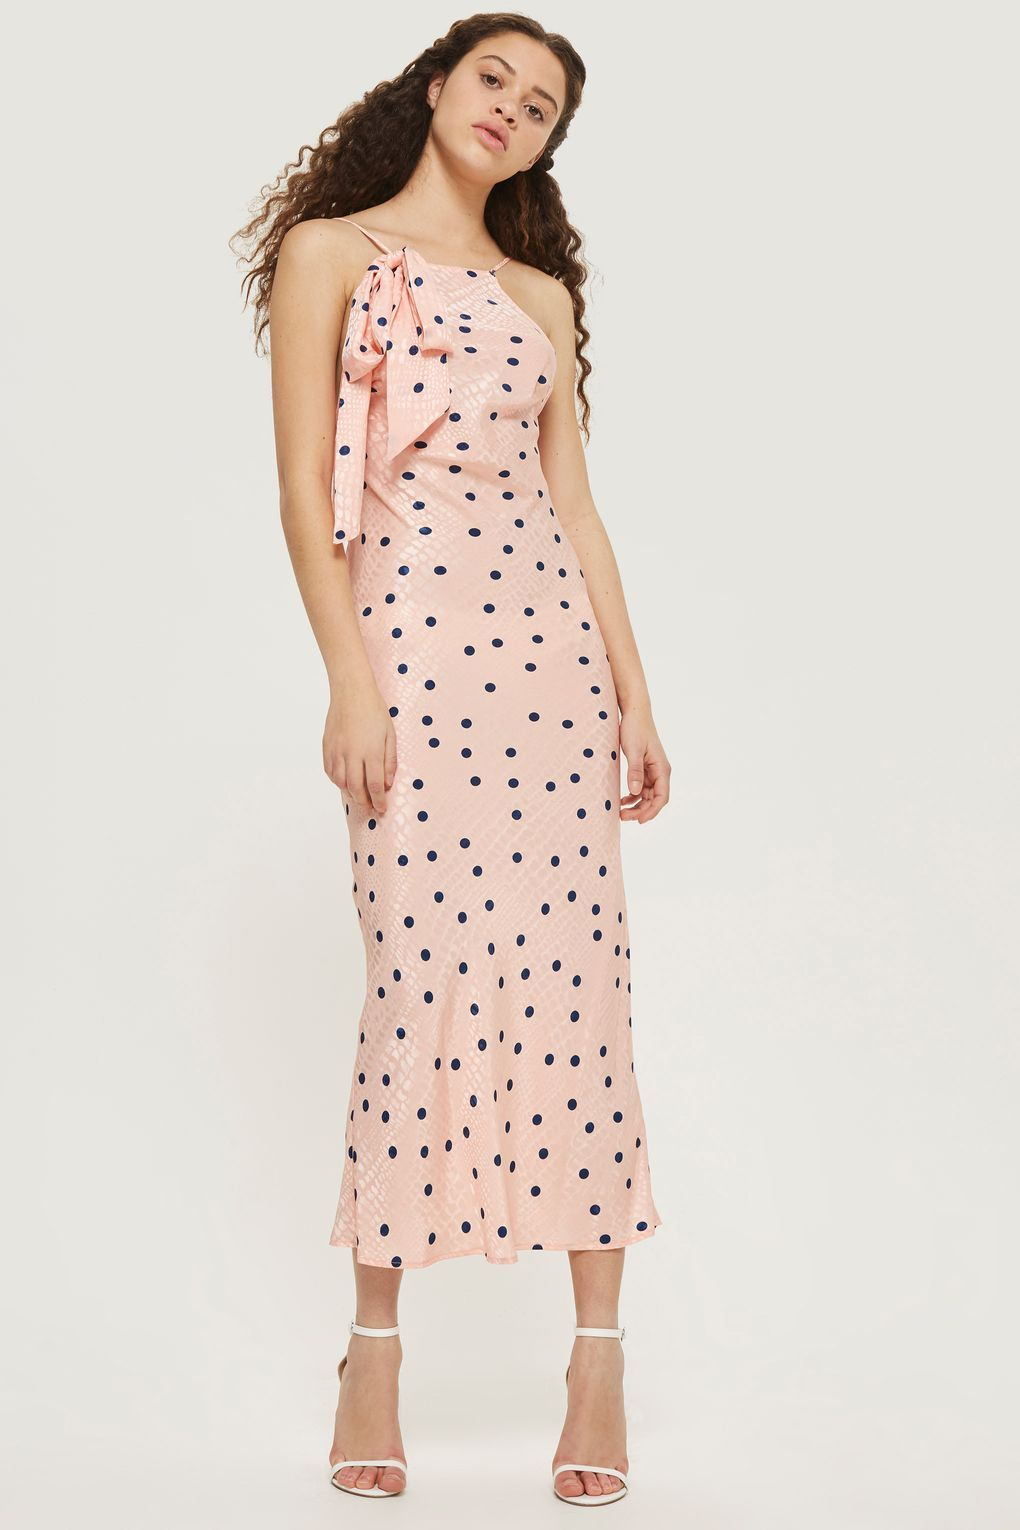 42a37d3c2e3a7 Spot Jacquard Slip Dress | topshop | Dresses, Fashion, Wedding guest ...